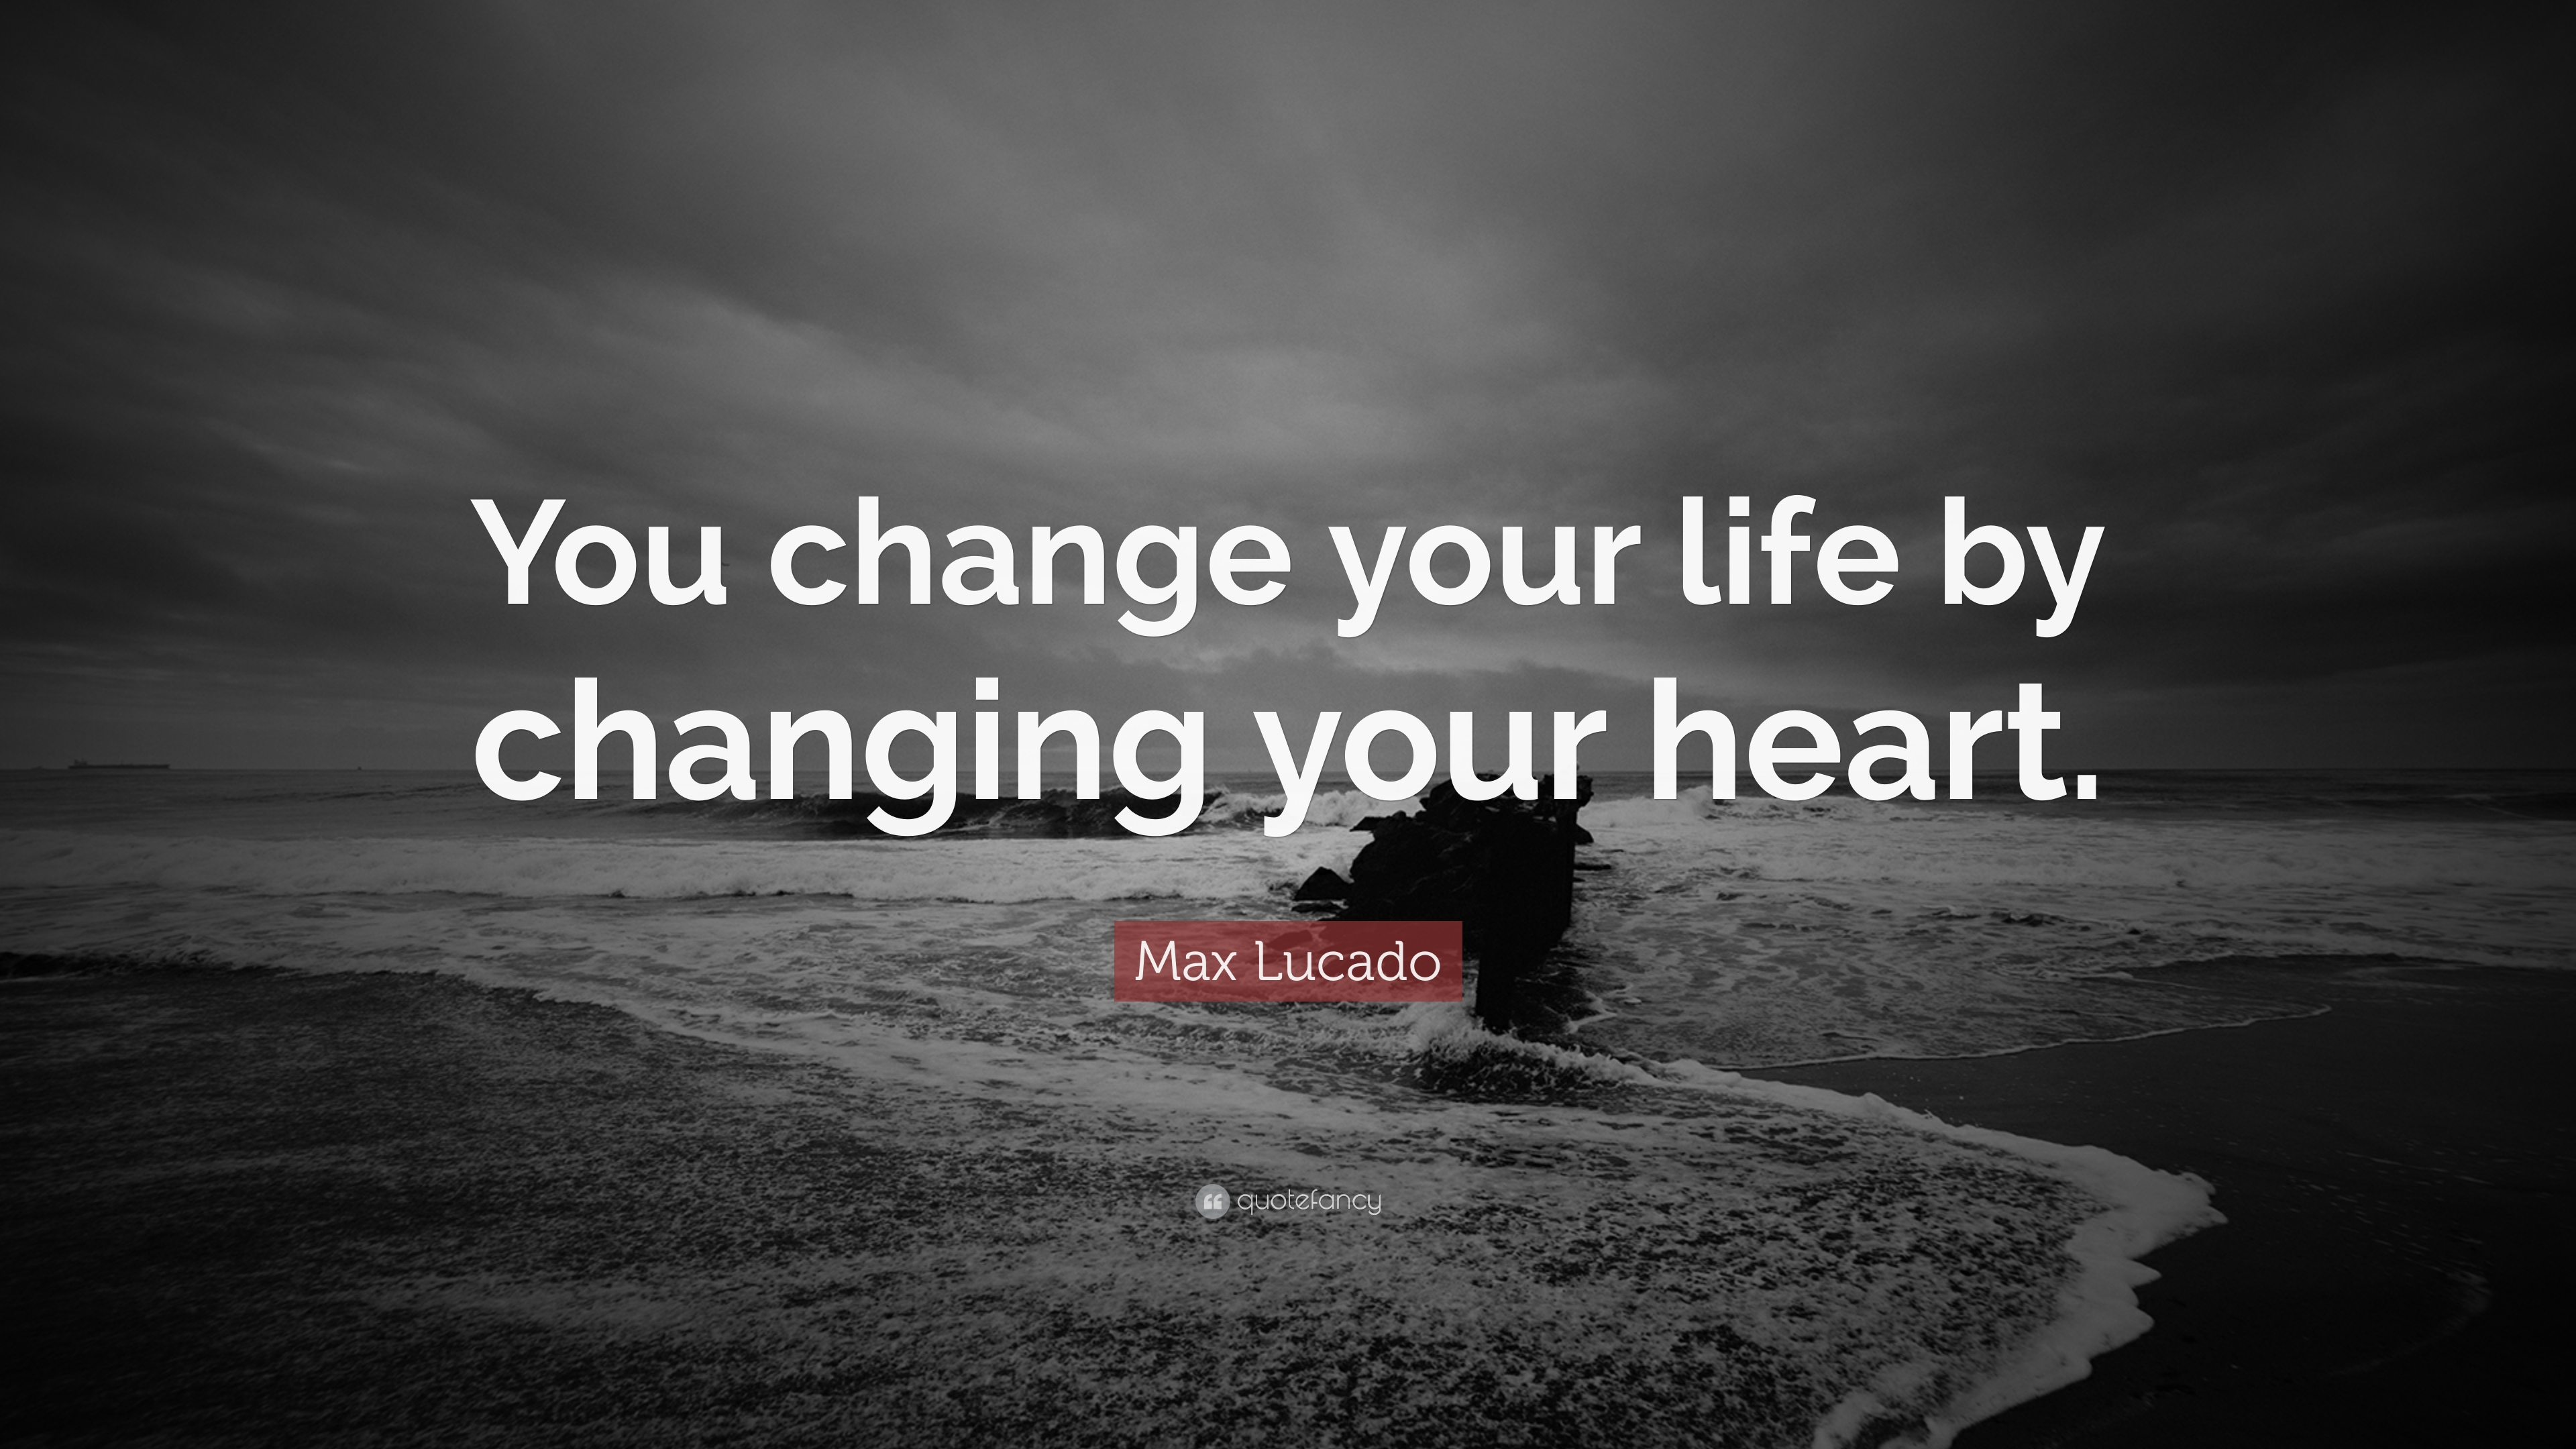 Max Lucado Quote You Change Your Life By Changing Your Heart 24